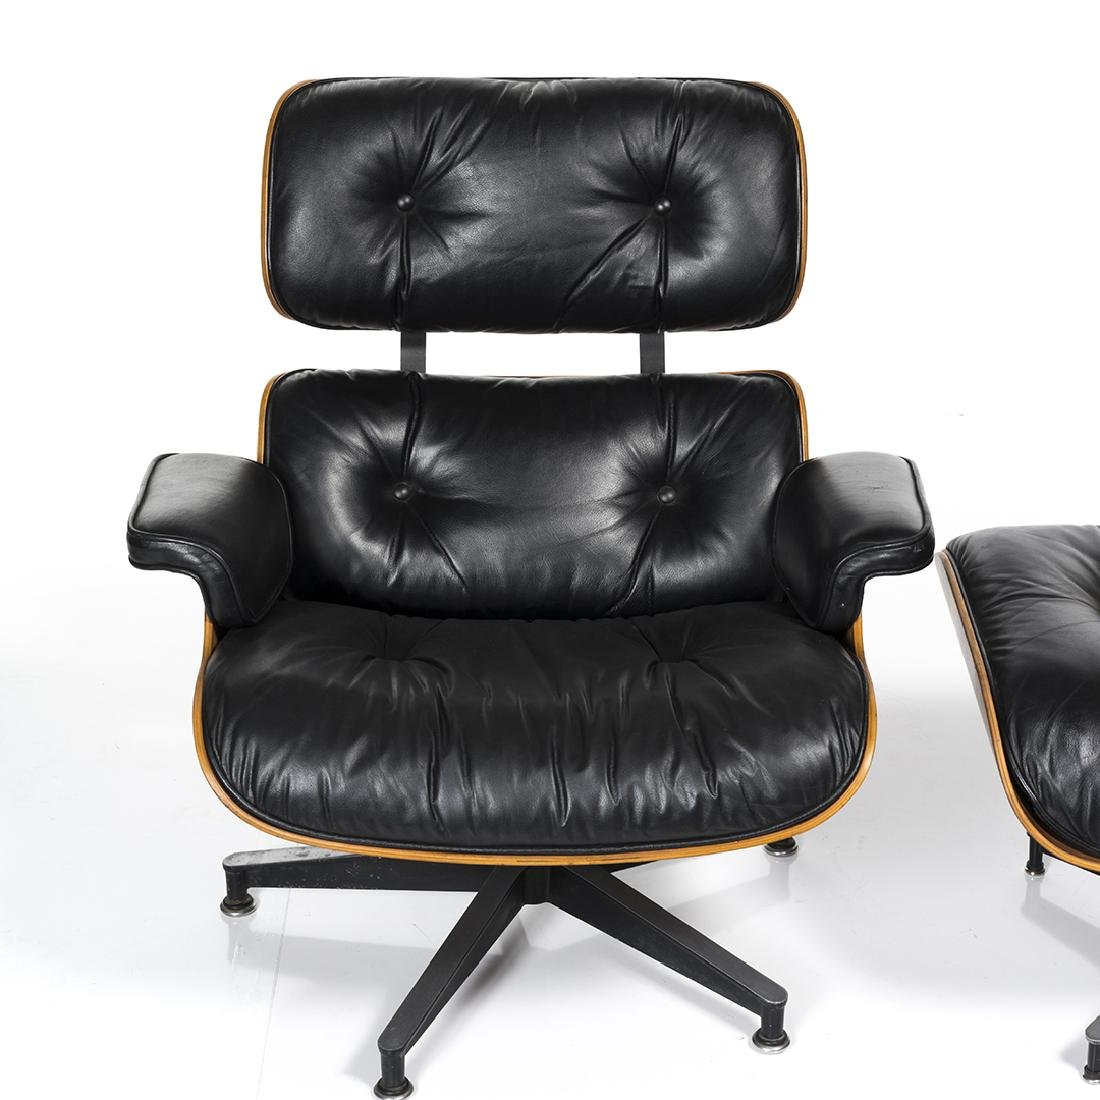 Charles Eames Lounge Chair and Ottoman - 7